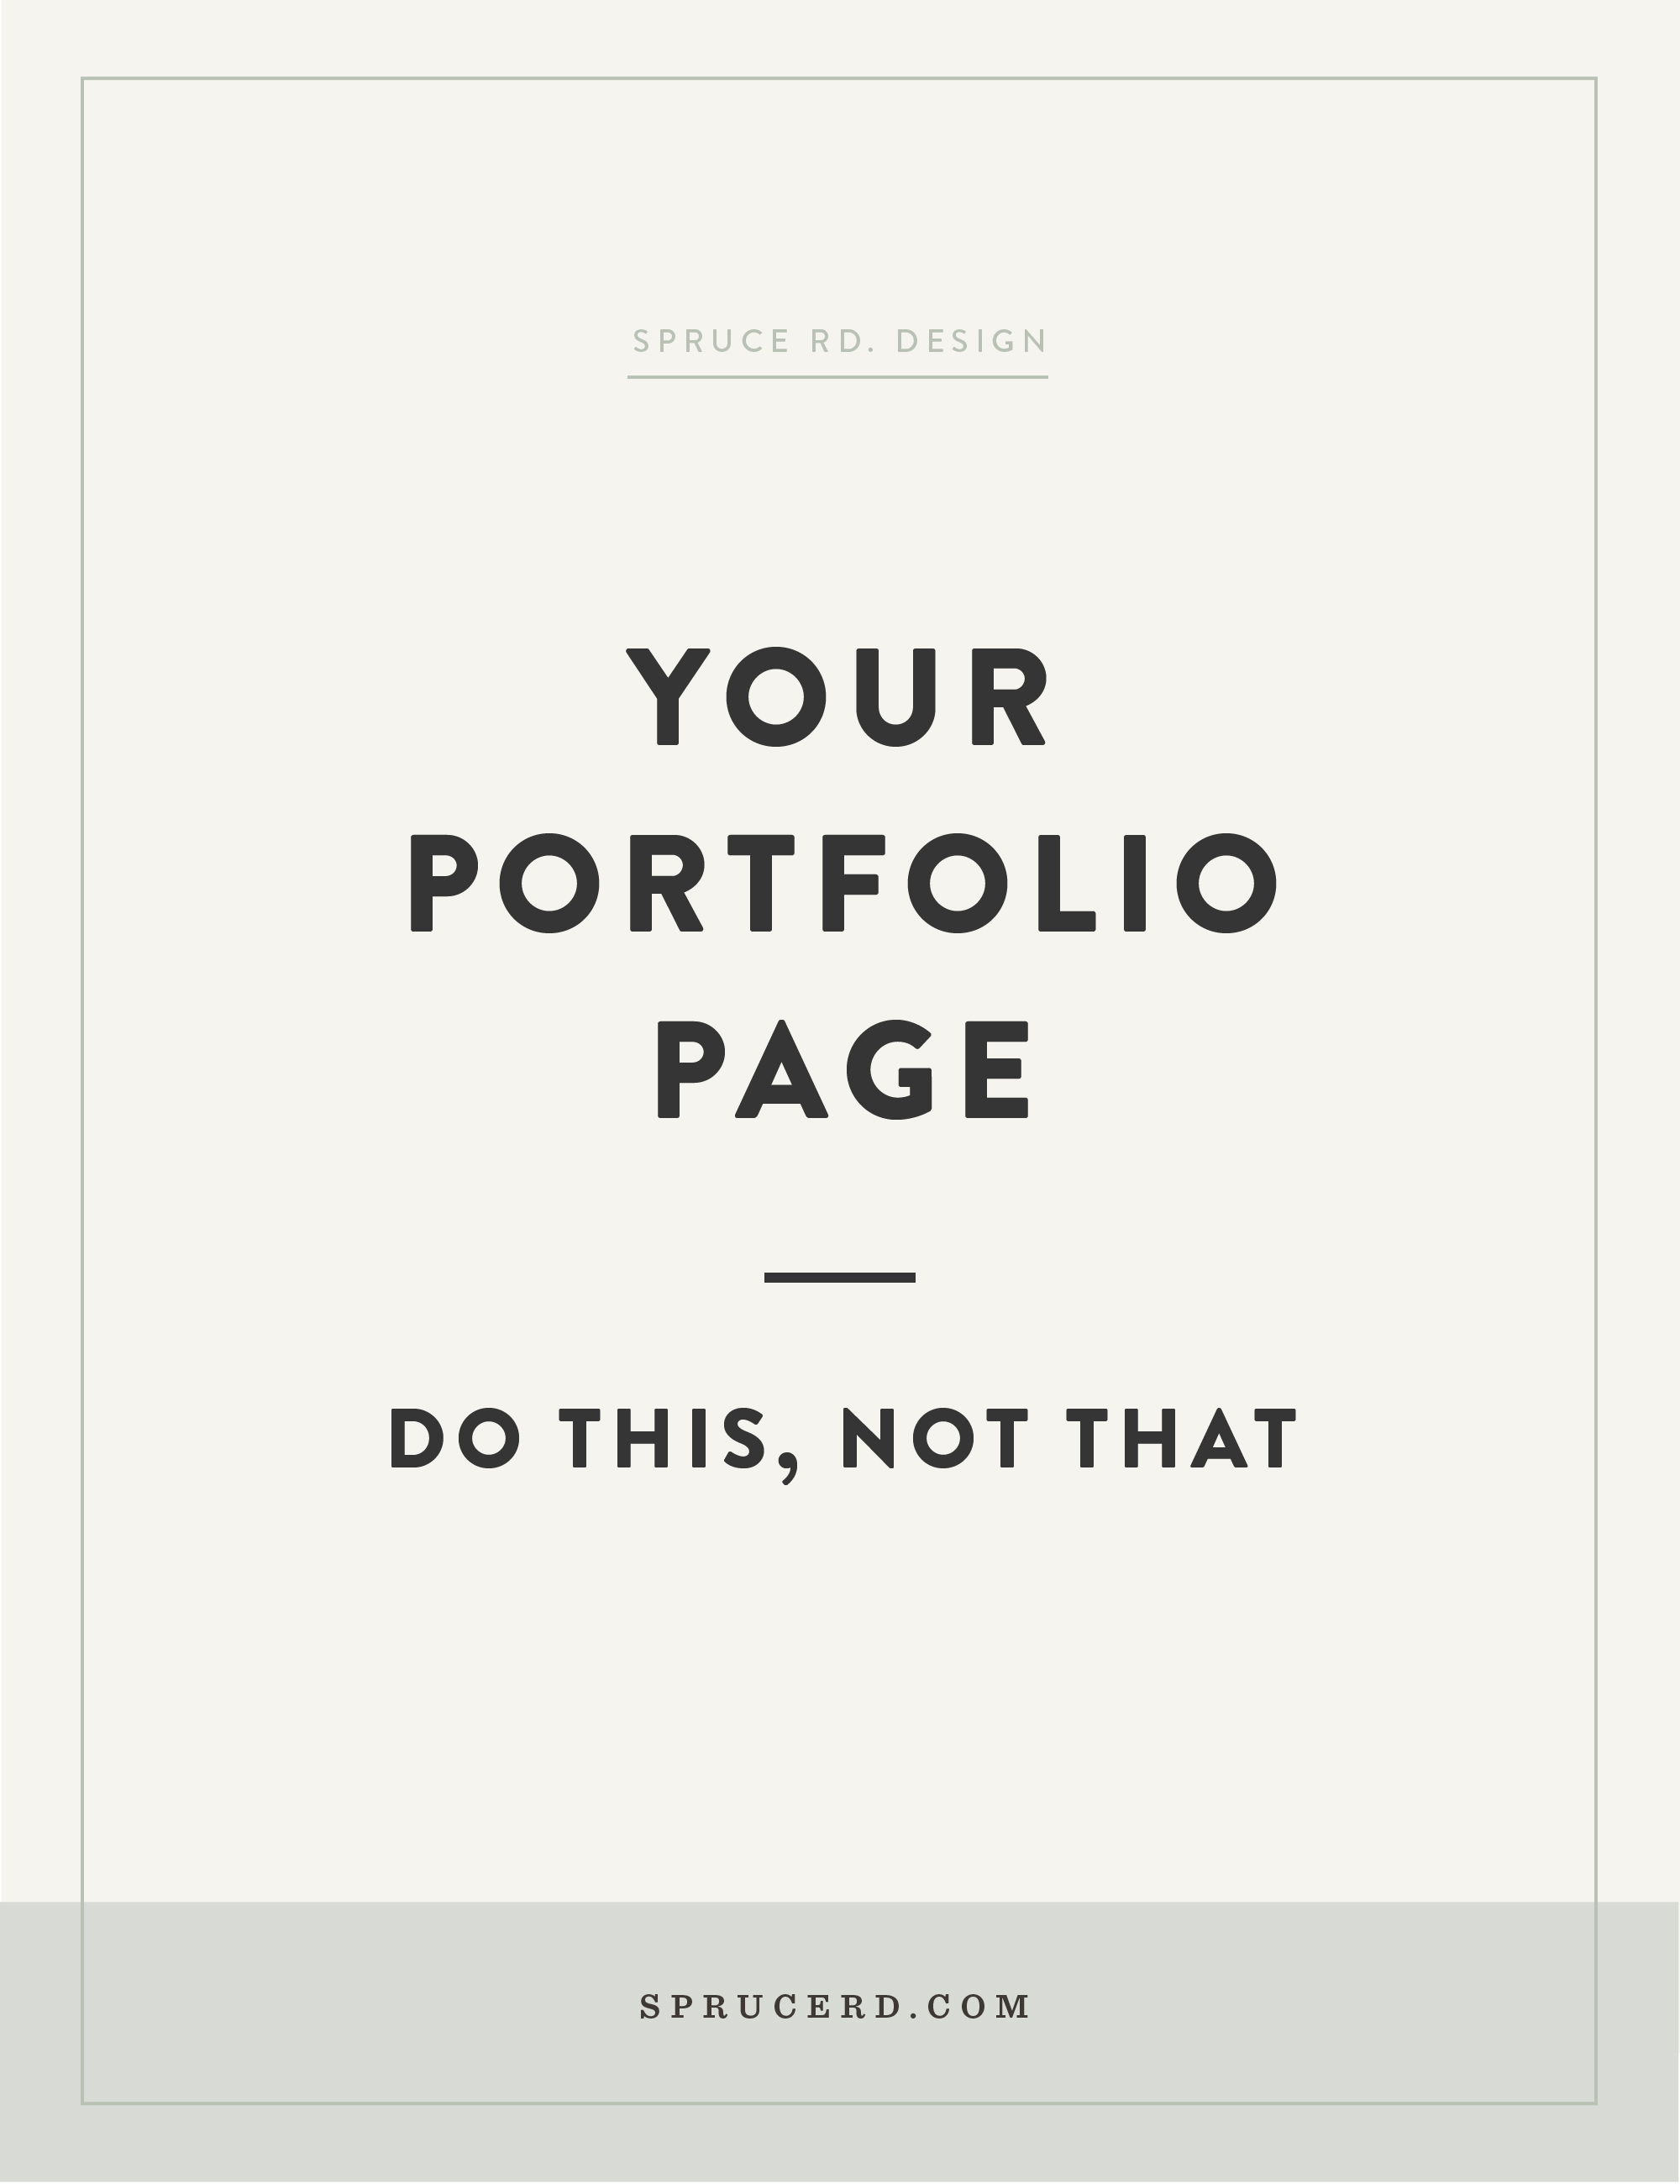 Your portfolio page: Do this, not that | Spruce Rd. | How to design a portfolio page for your freelance design business that books clients.